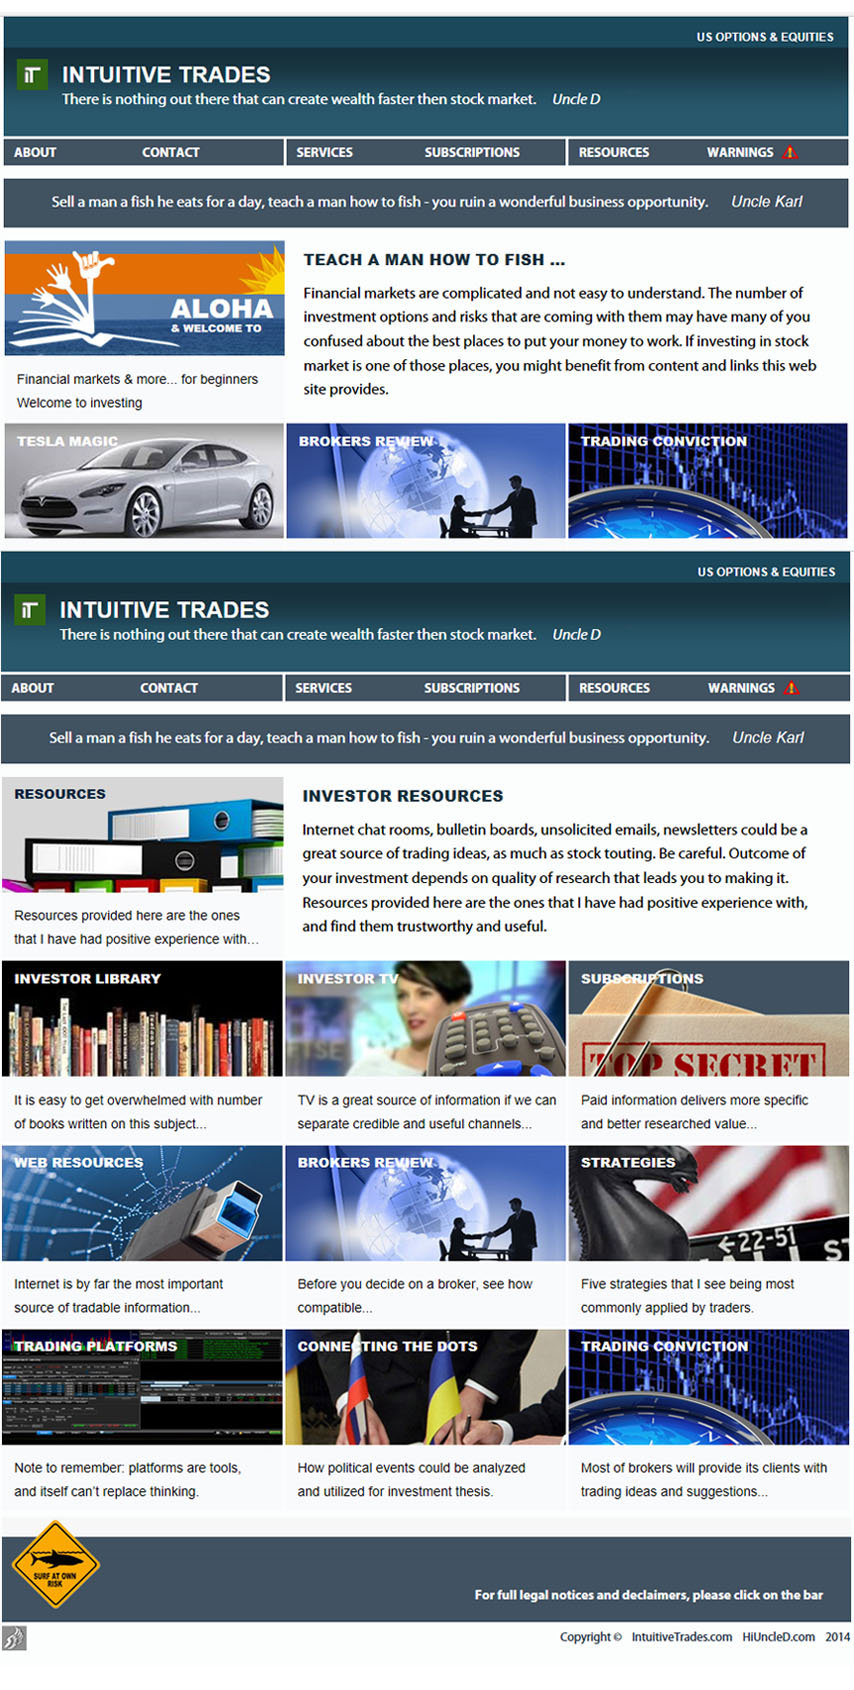 Intuitive Trades website